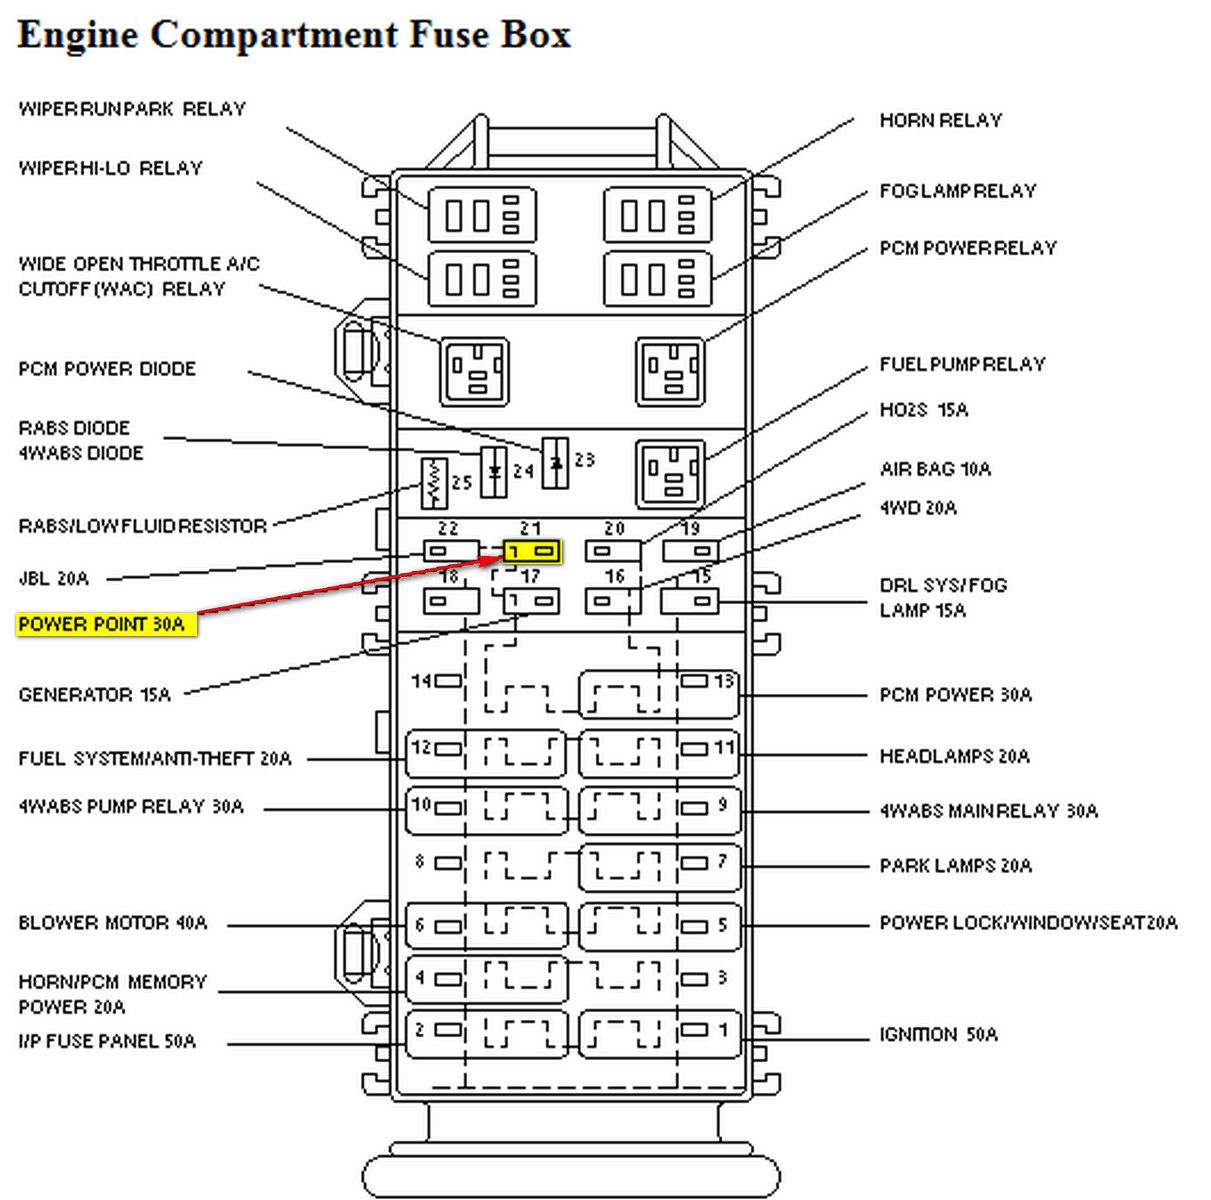 2002 ford ranger fuse diagram 1997 ford ranger fuse box diagram 1998 ford explorer fuse diagram 9 10 from 48 votes 1998 ford explorer [ 1211 x 1200 Pixel ]